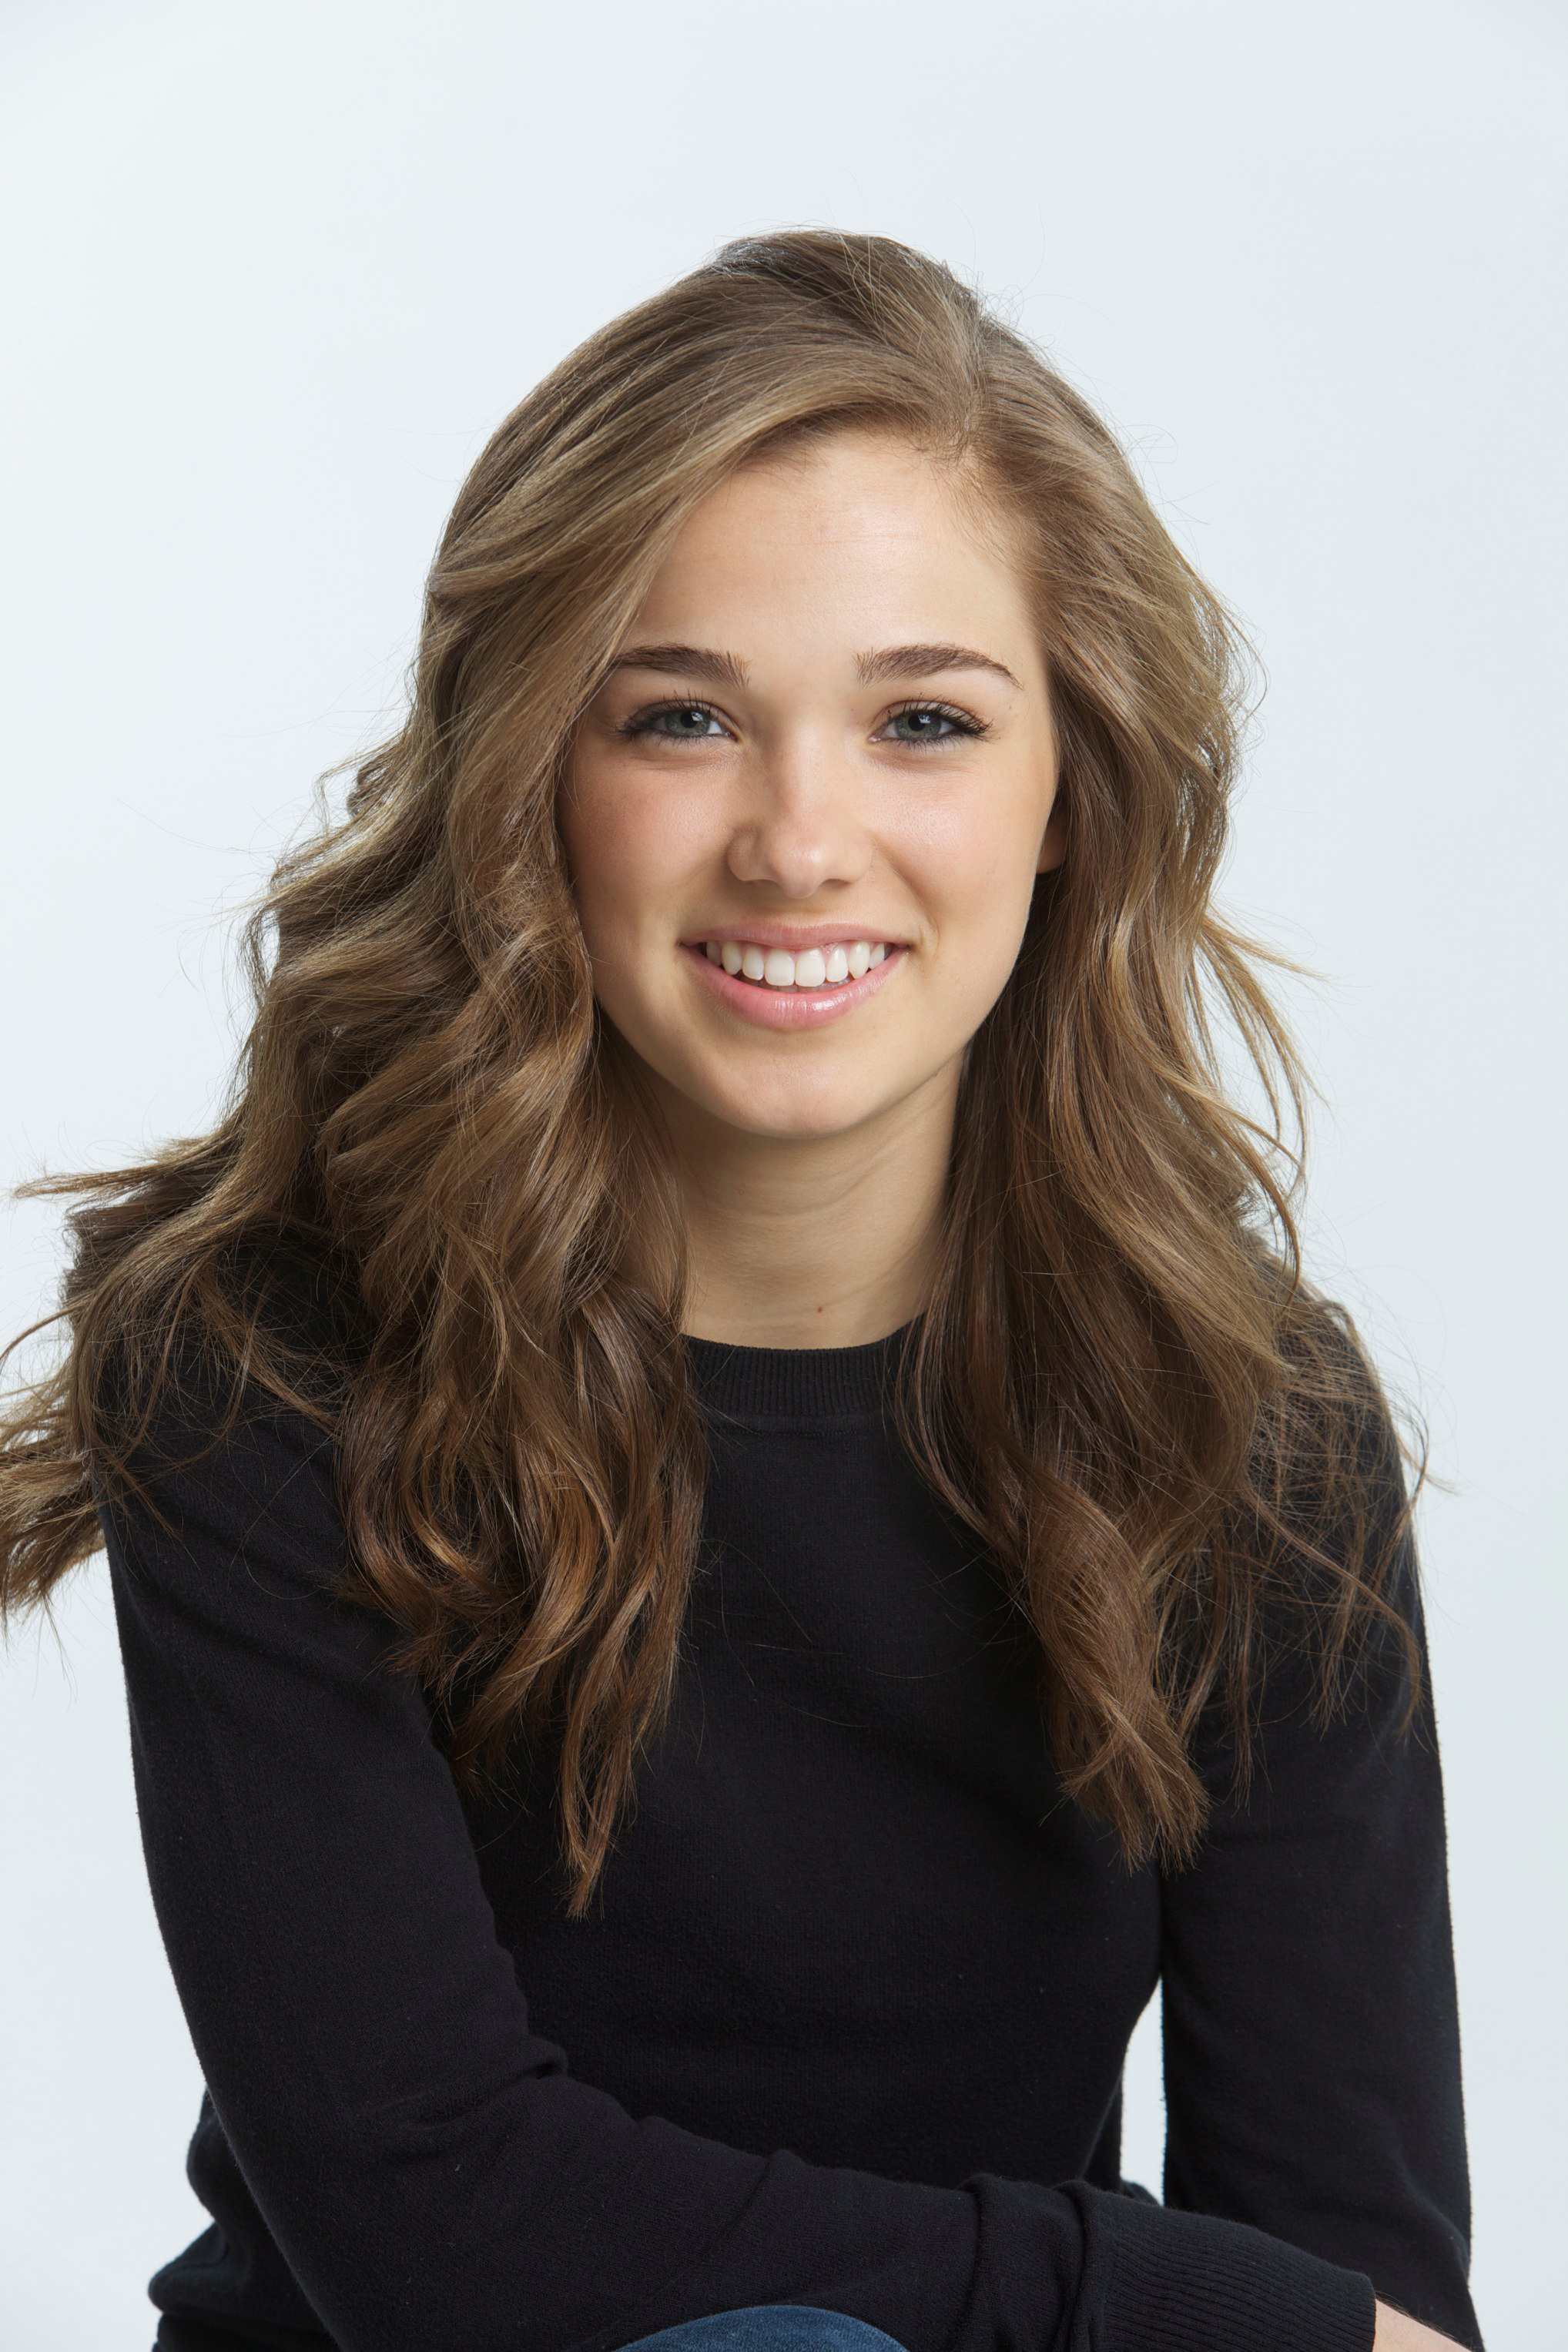 The 23-year old daughter of father Forrest L. Richardson and mother Valerie Richardson Haley Lu Richardson in 2018 photo. Haley Lu Richardson earned a  million dollar salary - leaving the net worth at 0.3 million in 2018